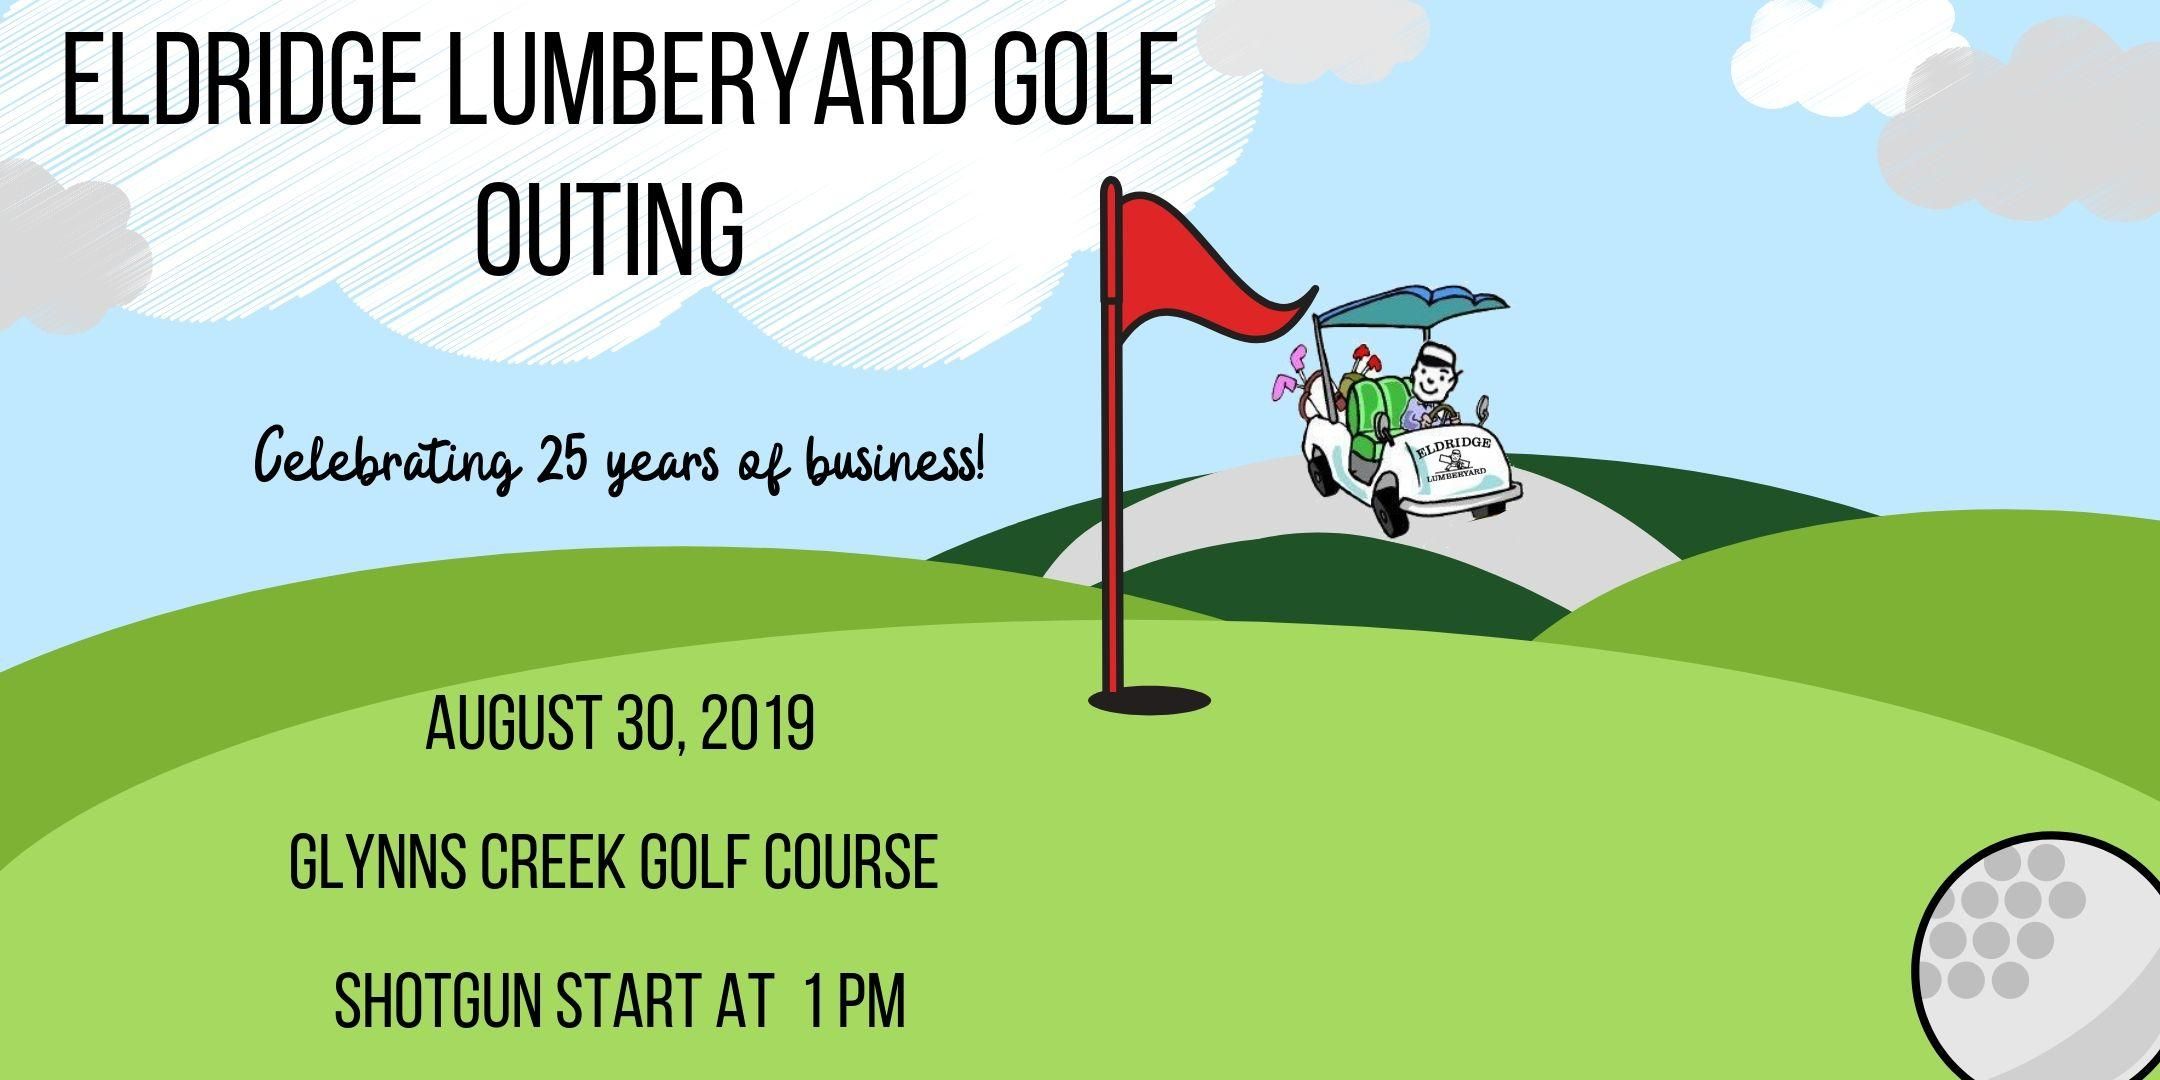 Eldridge Lumberyard Golf Outing: Celebrating 25 Years of Business!